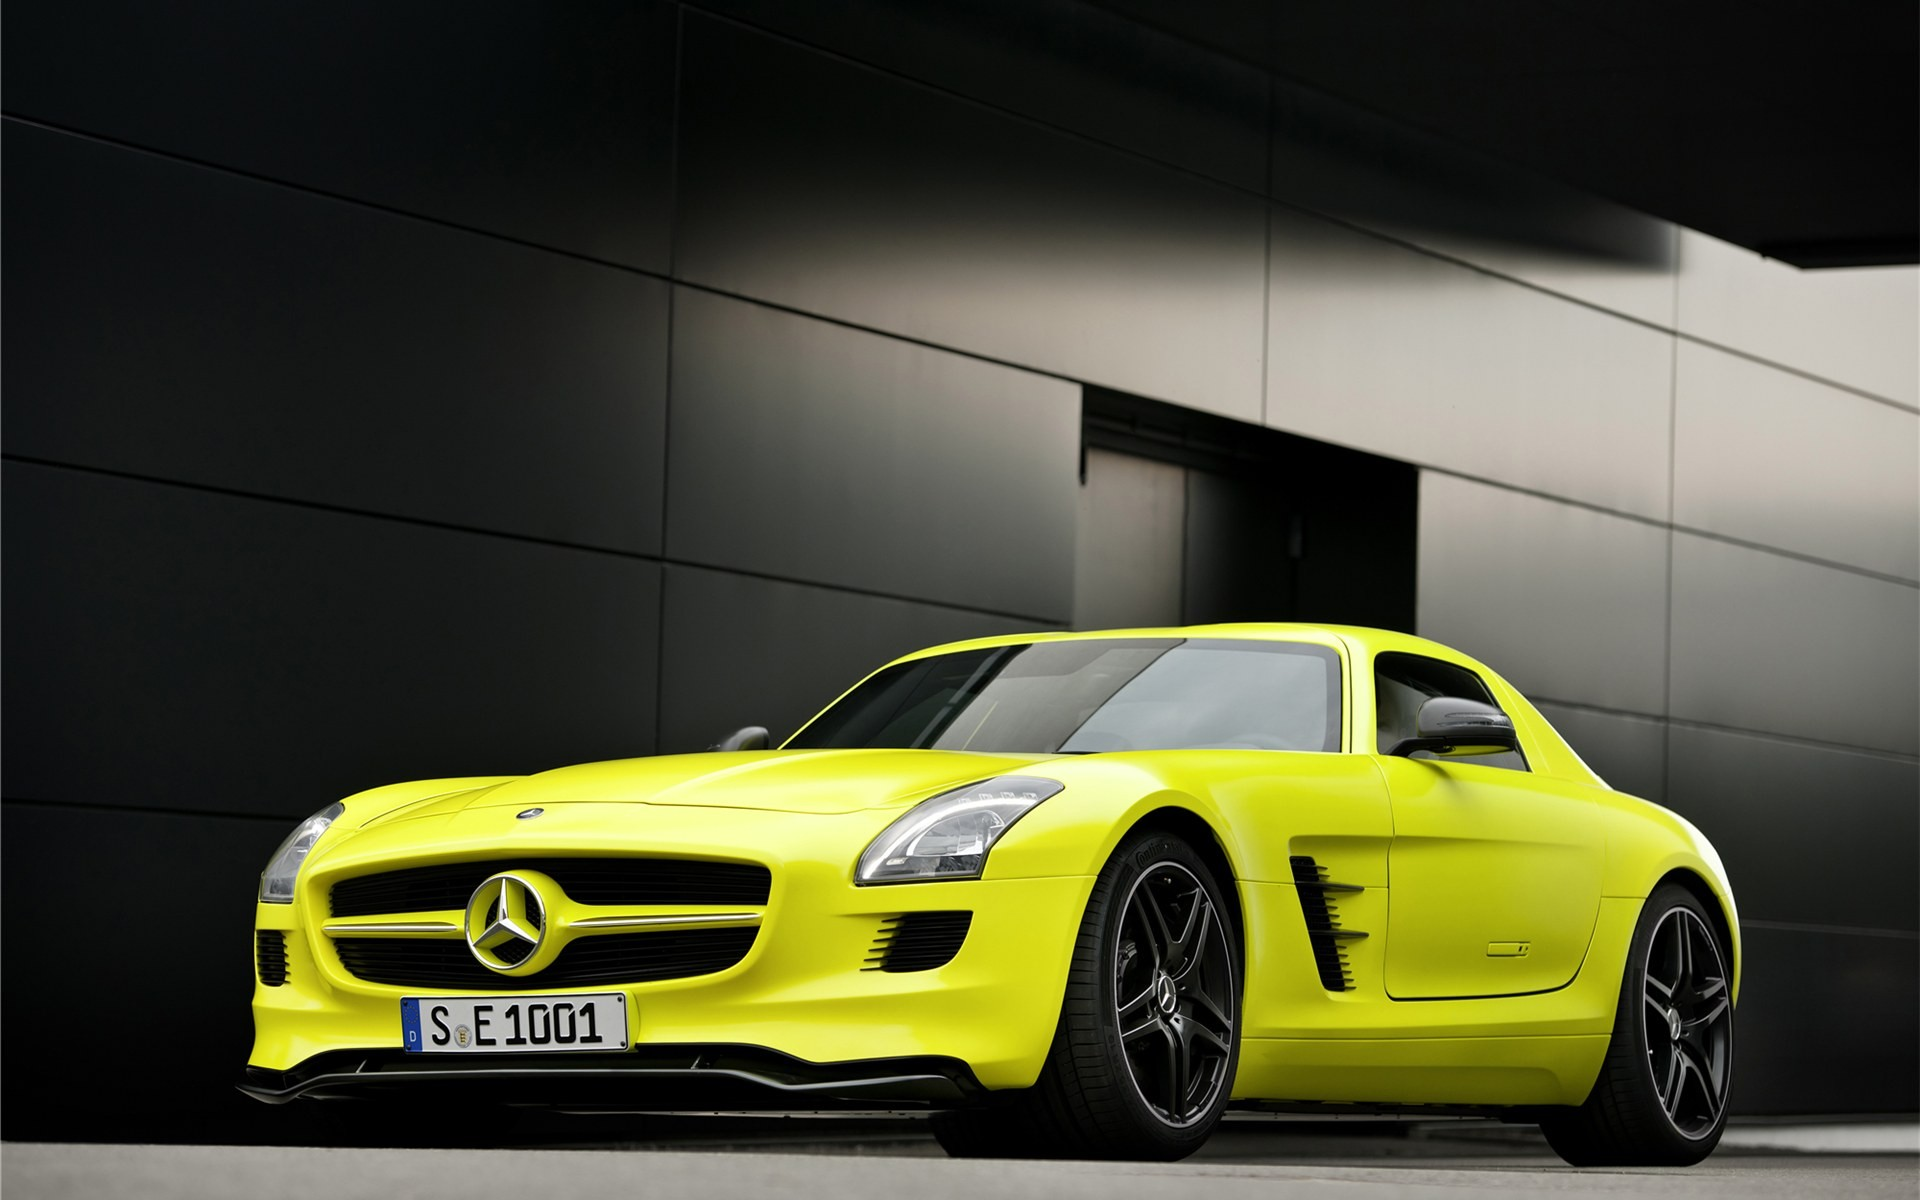 Cell cars amg mercedes-benz HD Wallpaper